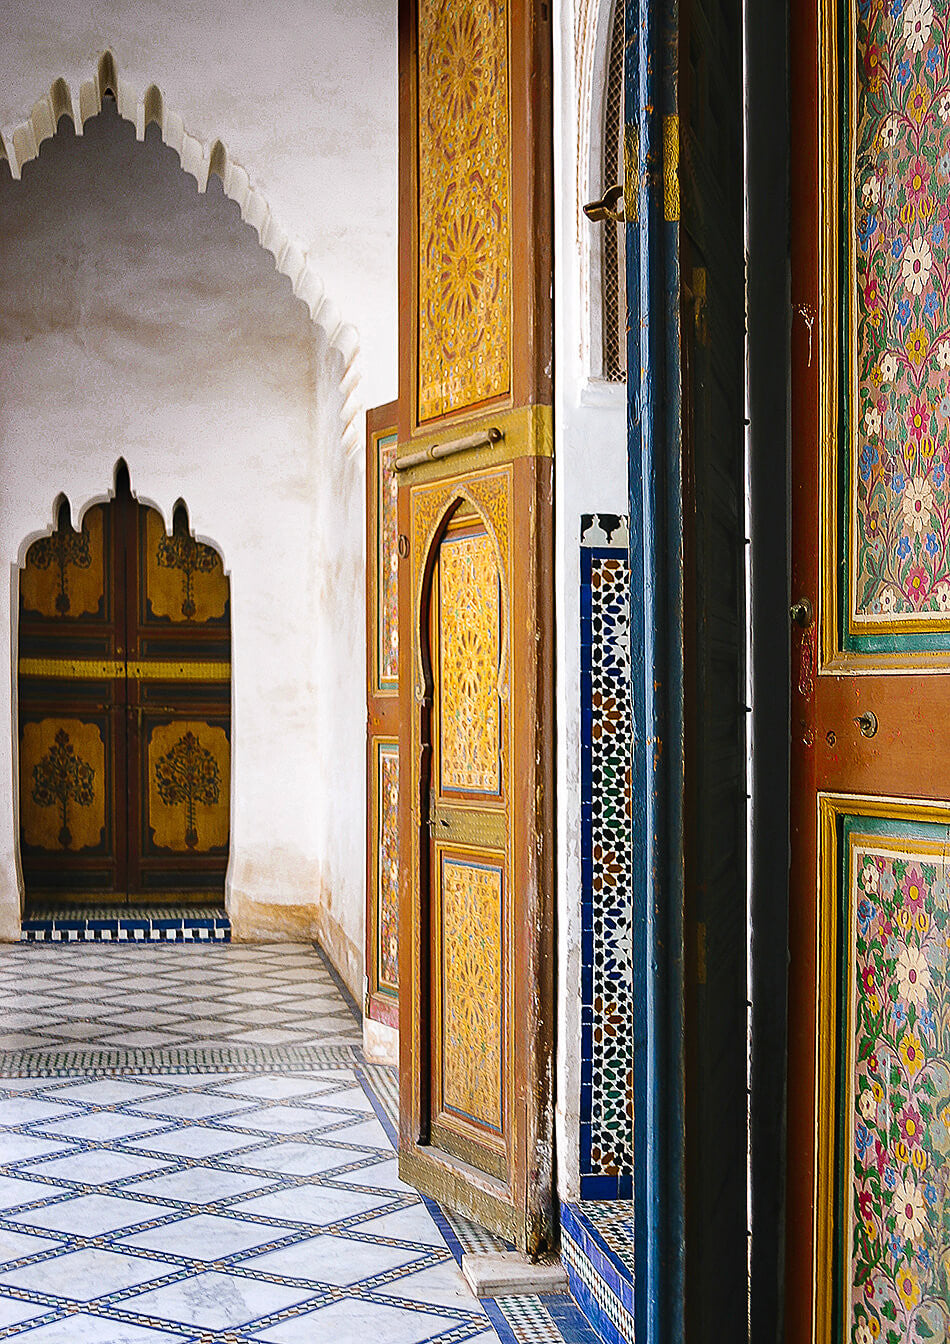 marrakesh morocco photographic art framed print art print rustic interior moroccan decor moroccan art print morocco photo print moroccan art print for the walls framed art prints marrakesh art print photo for wall photo print